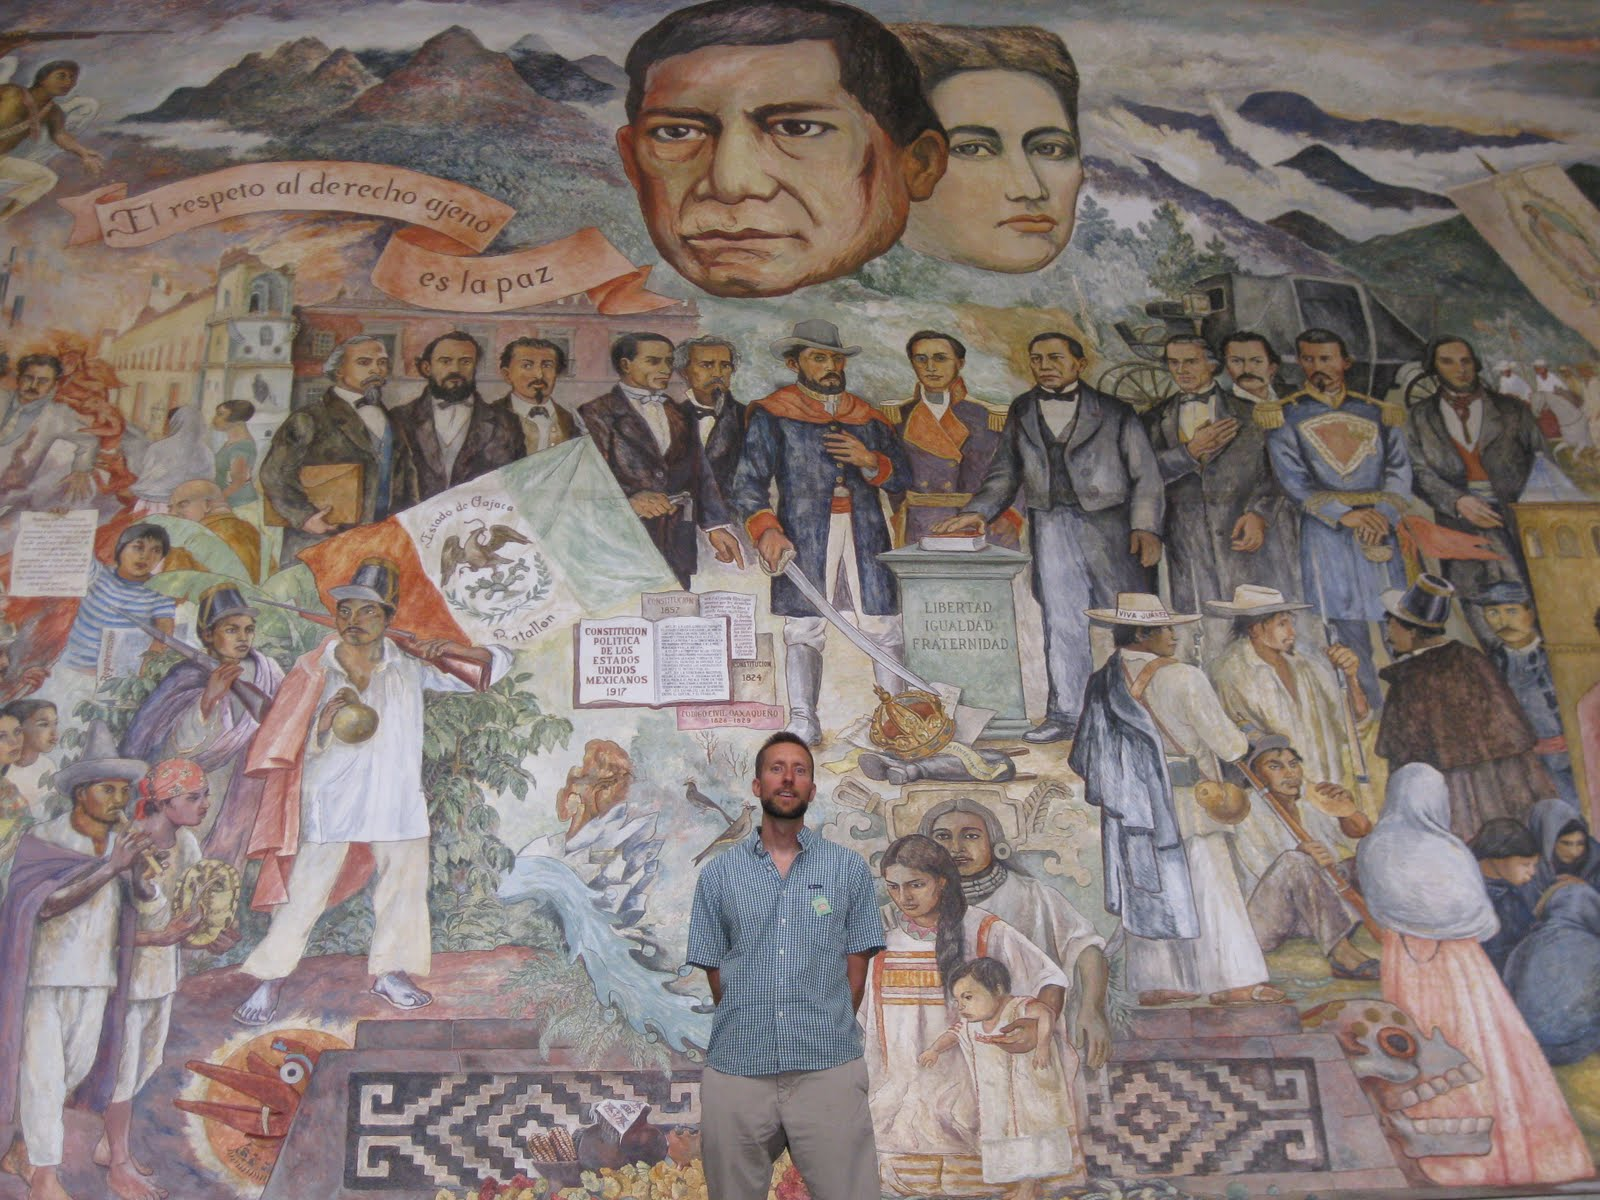 Benito juarez and the zapotecs september 2011 for Benito juarez mural